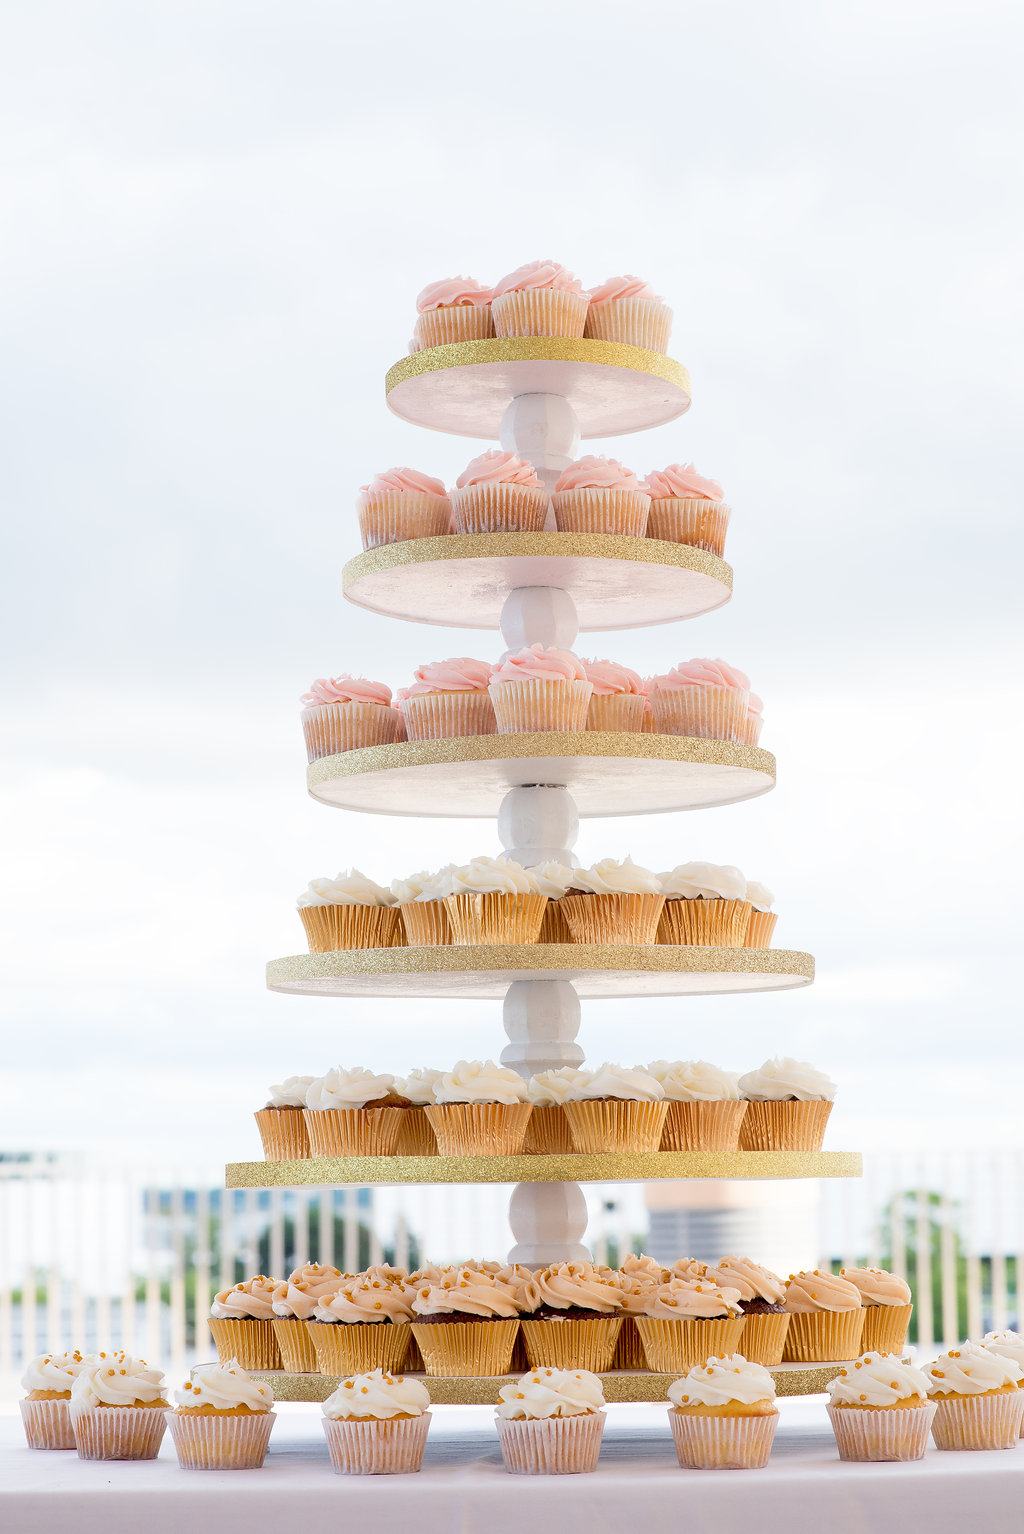 Blush and gold cupcake display for wedding reception dessert table